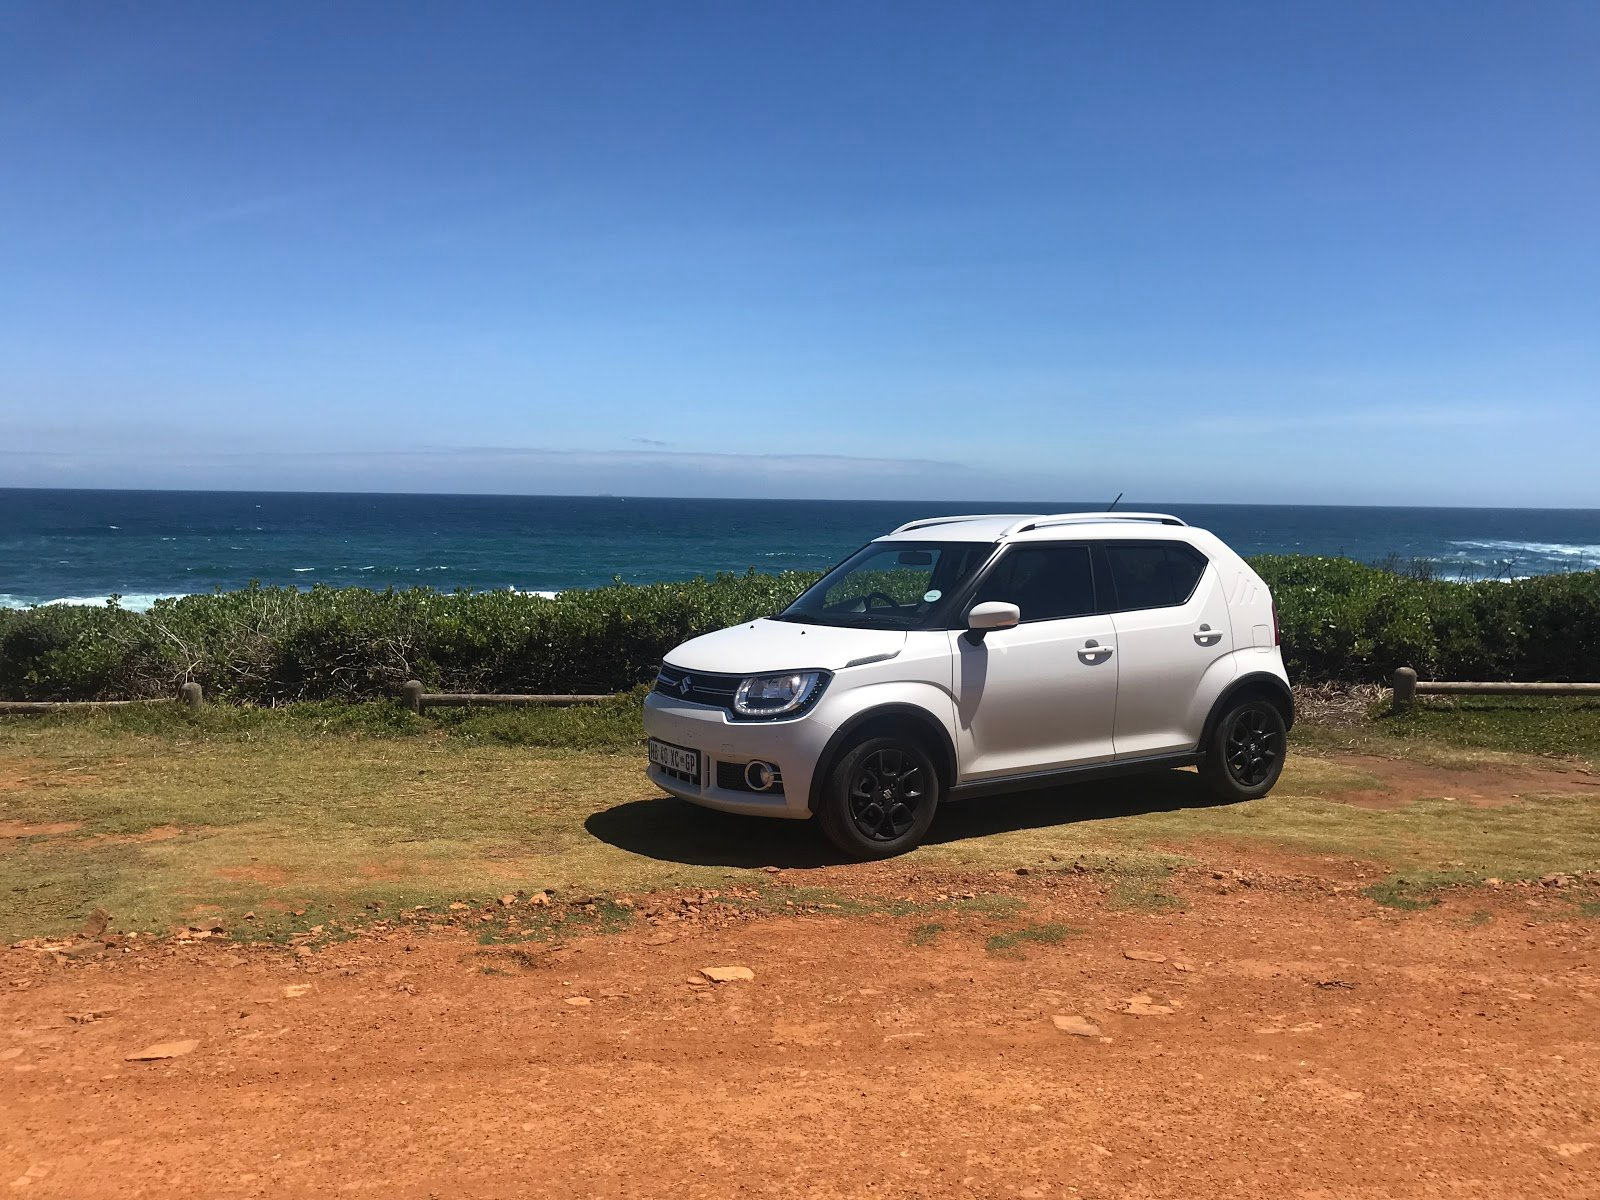 Suzuki Ignis is like no other